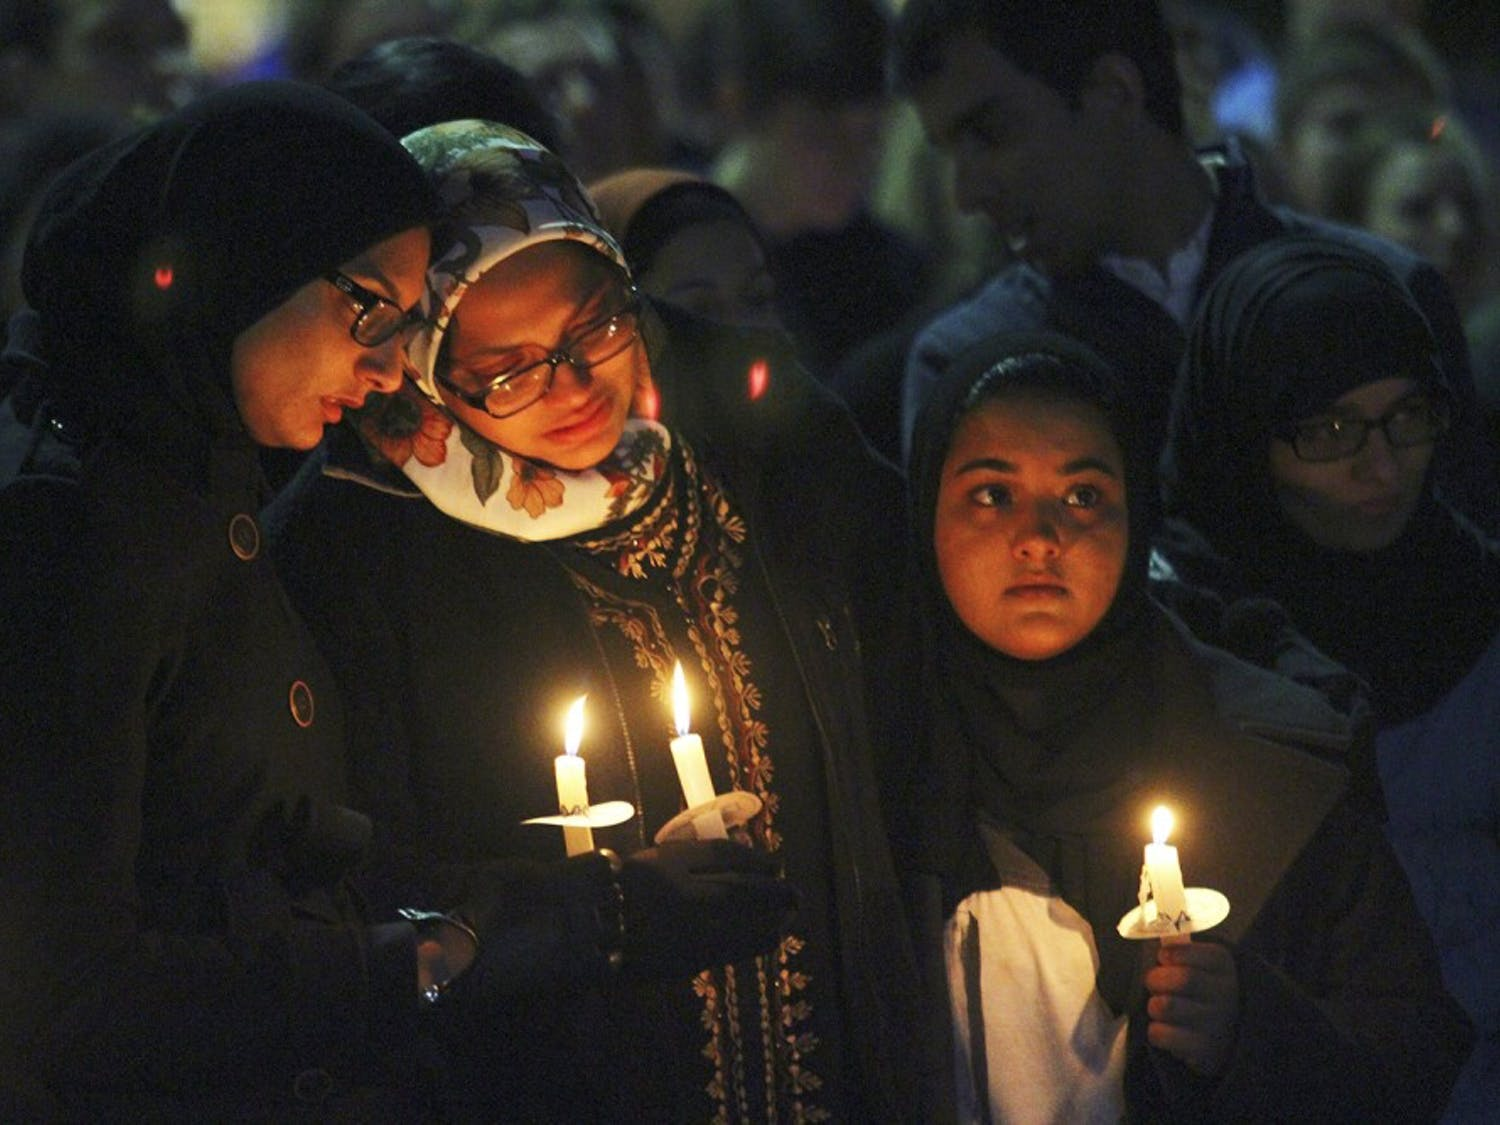 Mourners hold candles at a vigil in the Pit for Deah Shaddy Barakat, Yusor Mohammad Abu-Salha and Razan Mohammad Abu-Salha on Feb. 11. Thousands gathered to mourn their loss.